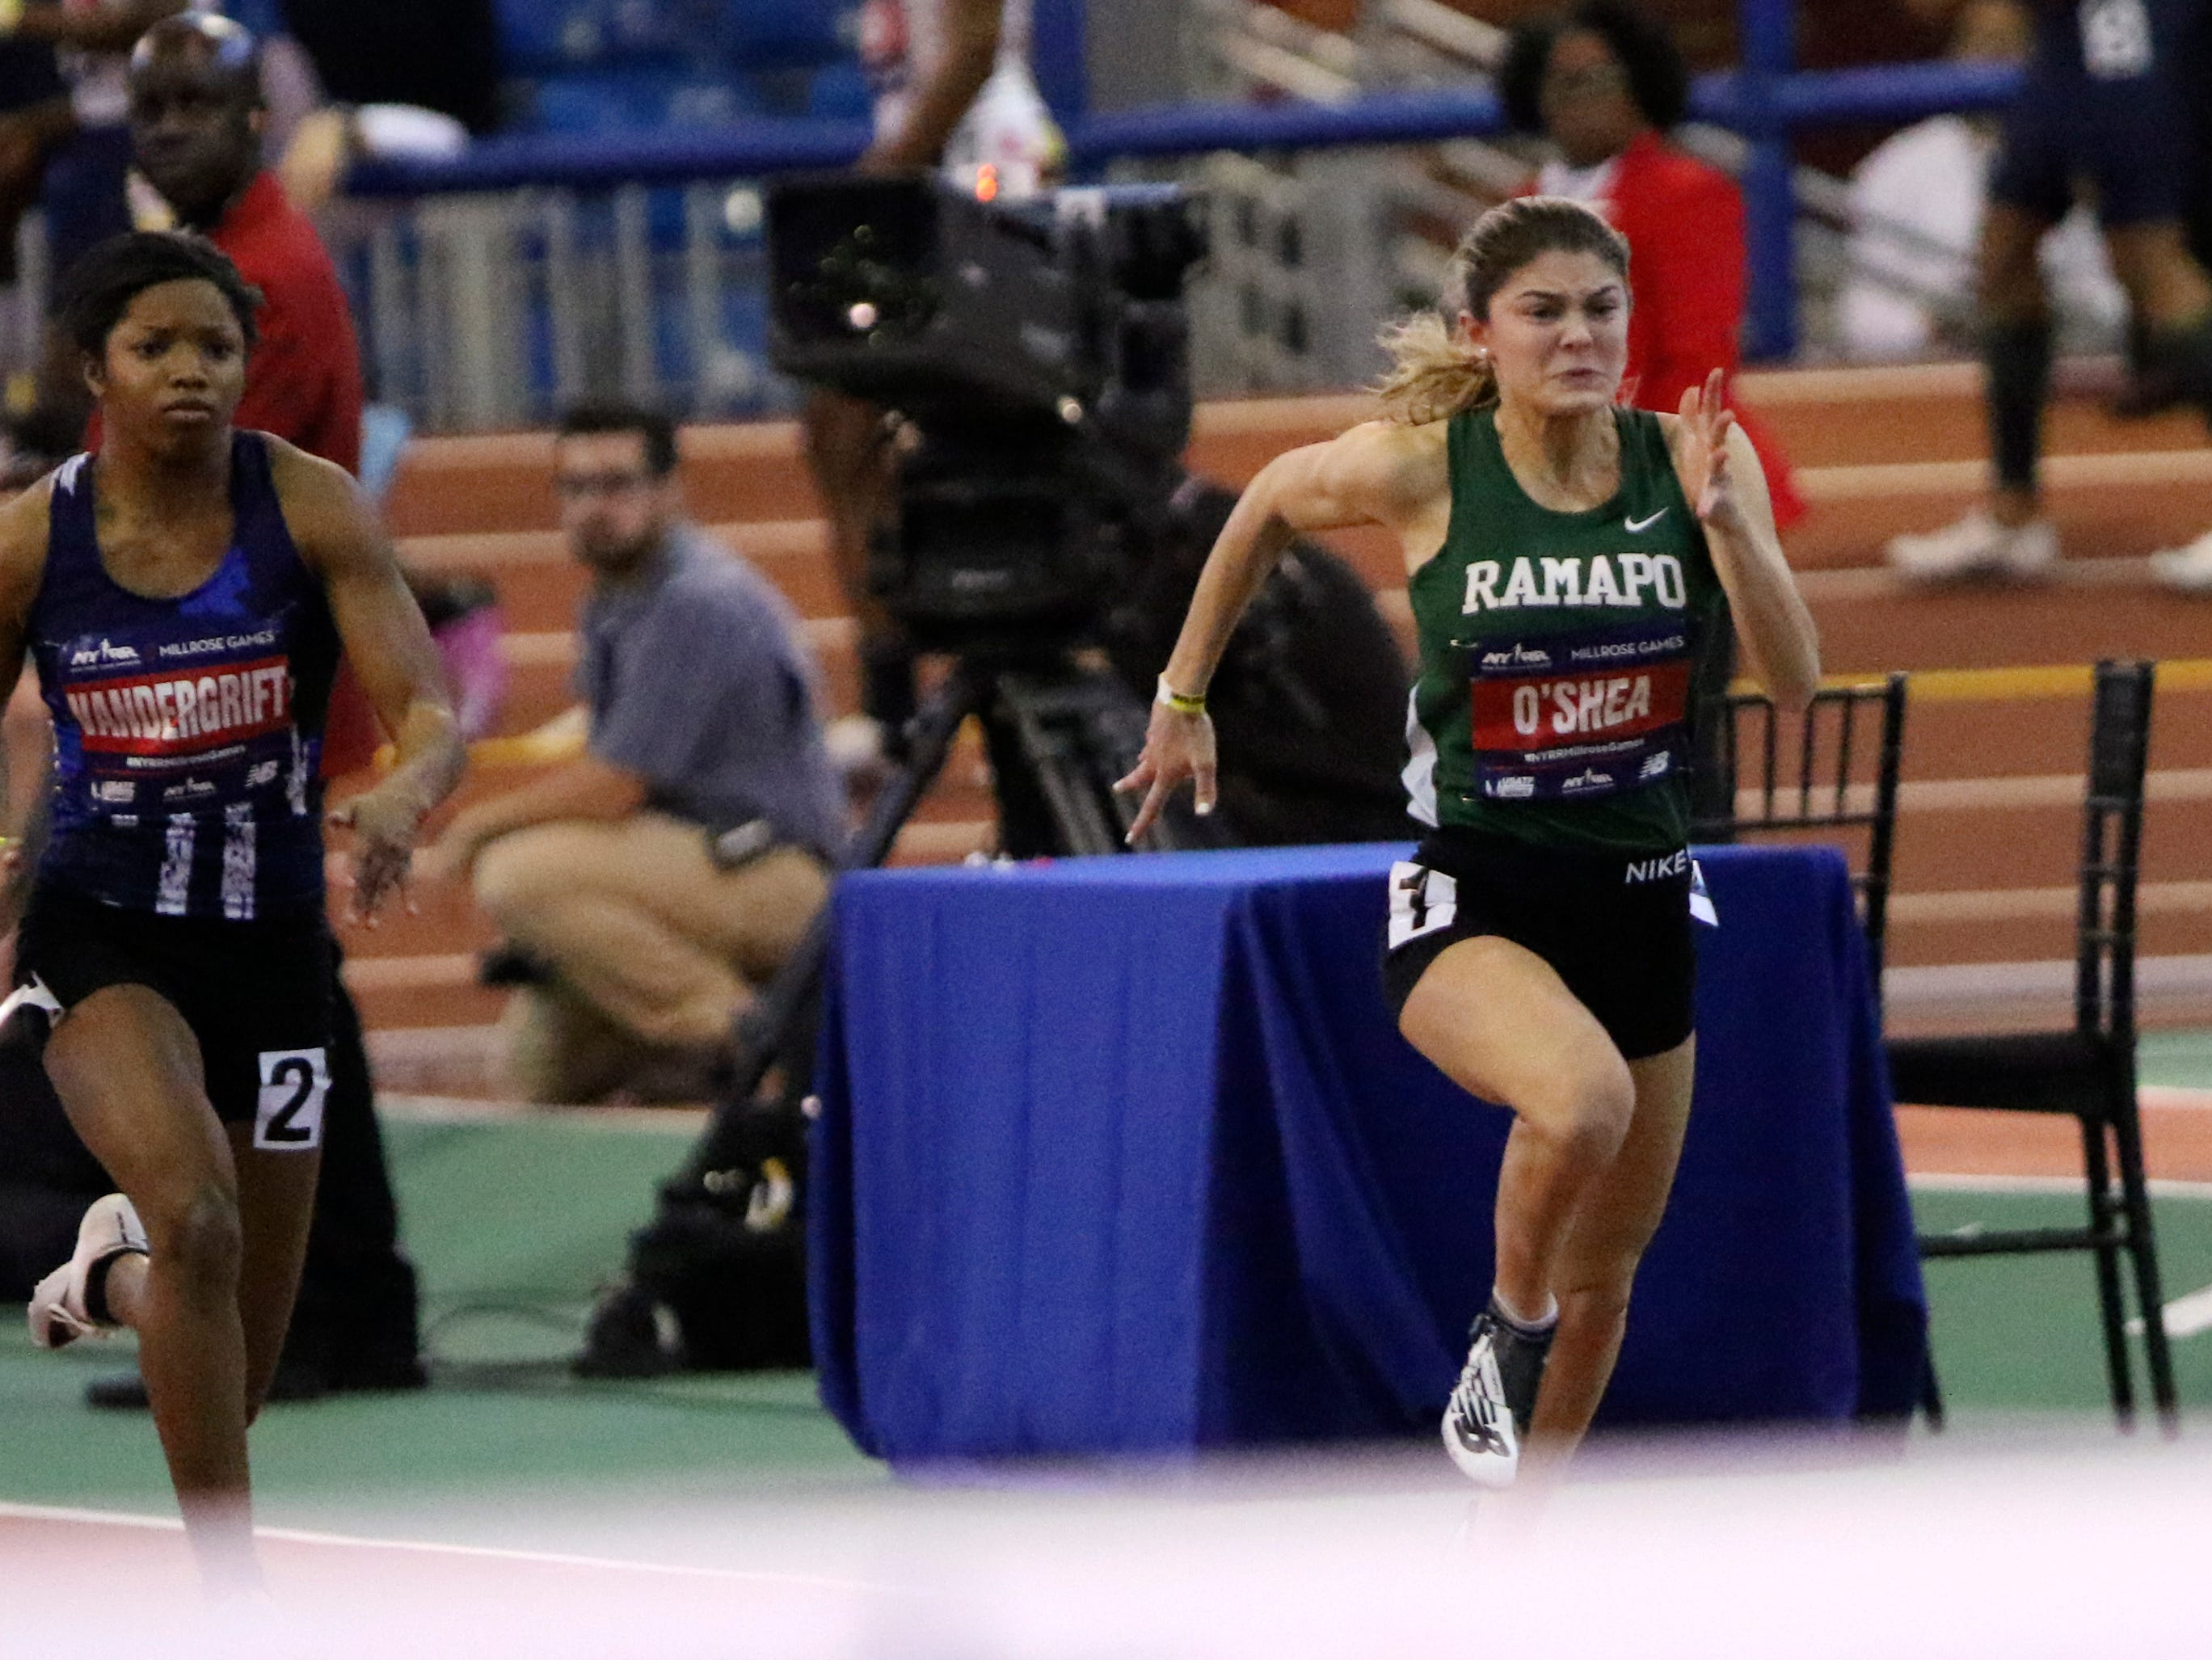 Grace O'Shea, of Ramapo, runs the 60 meter dash. Saturday, February 9, 2019